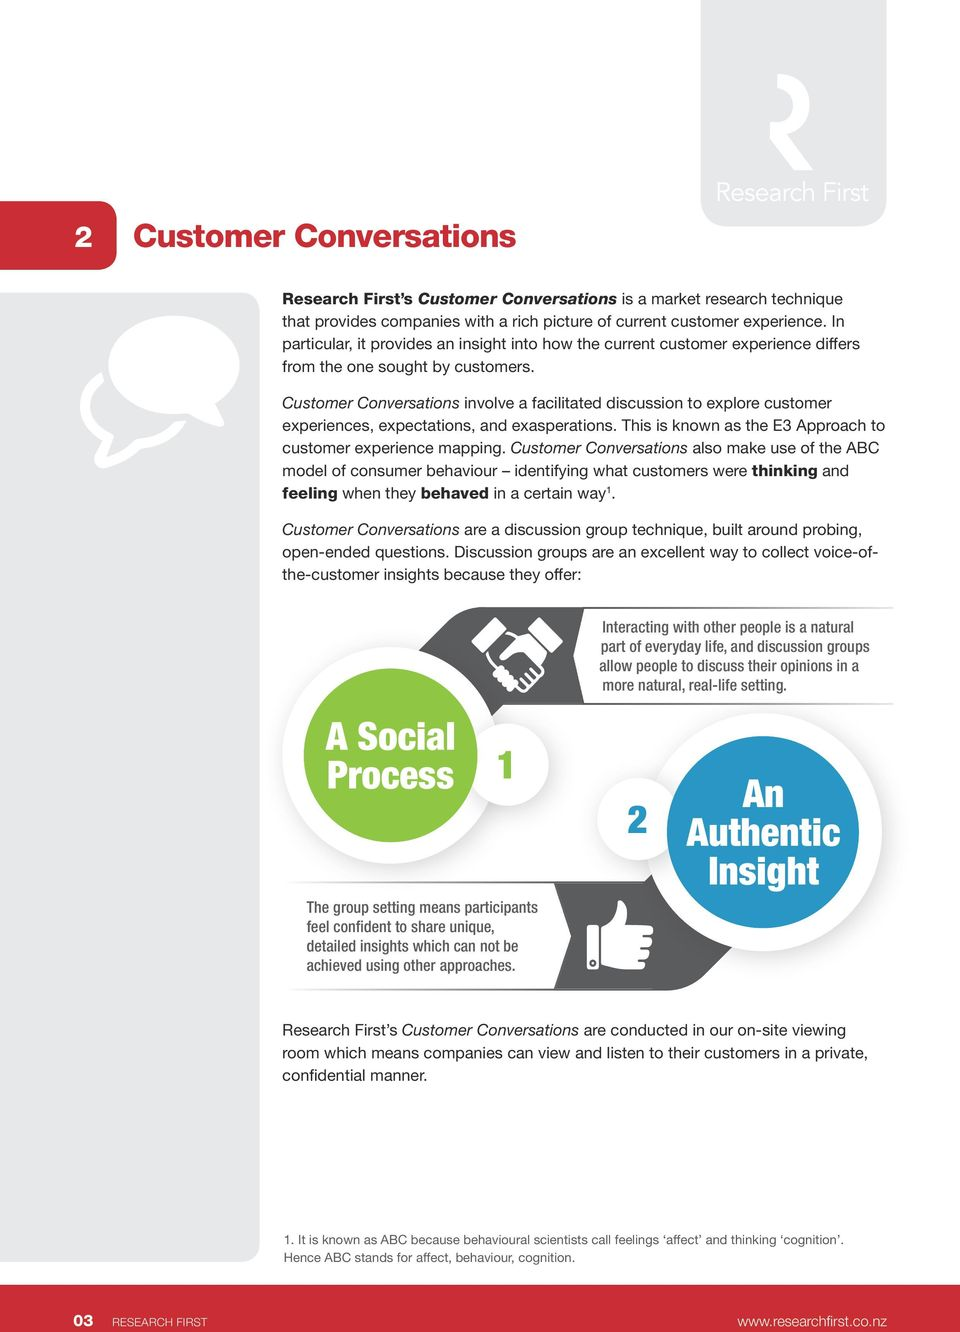 Customer Conversations involve a facilitated discussion to explore customer experiences, expectations, and exasperations. This is known as the E3 Approach to customer experience mapping.